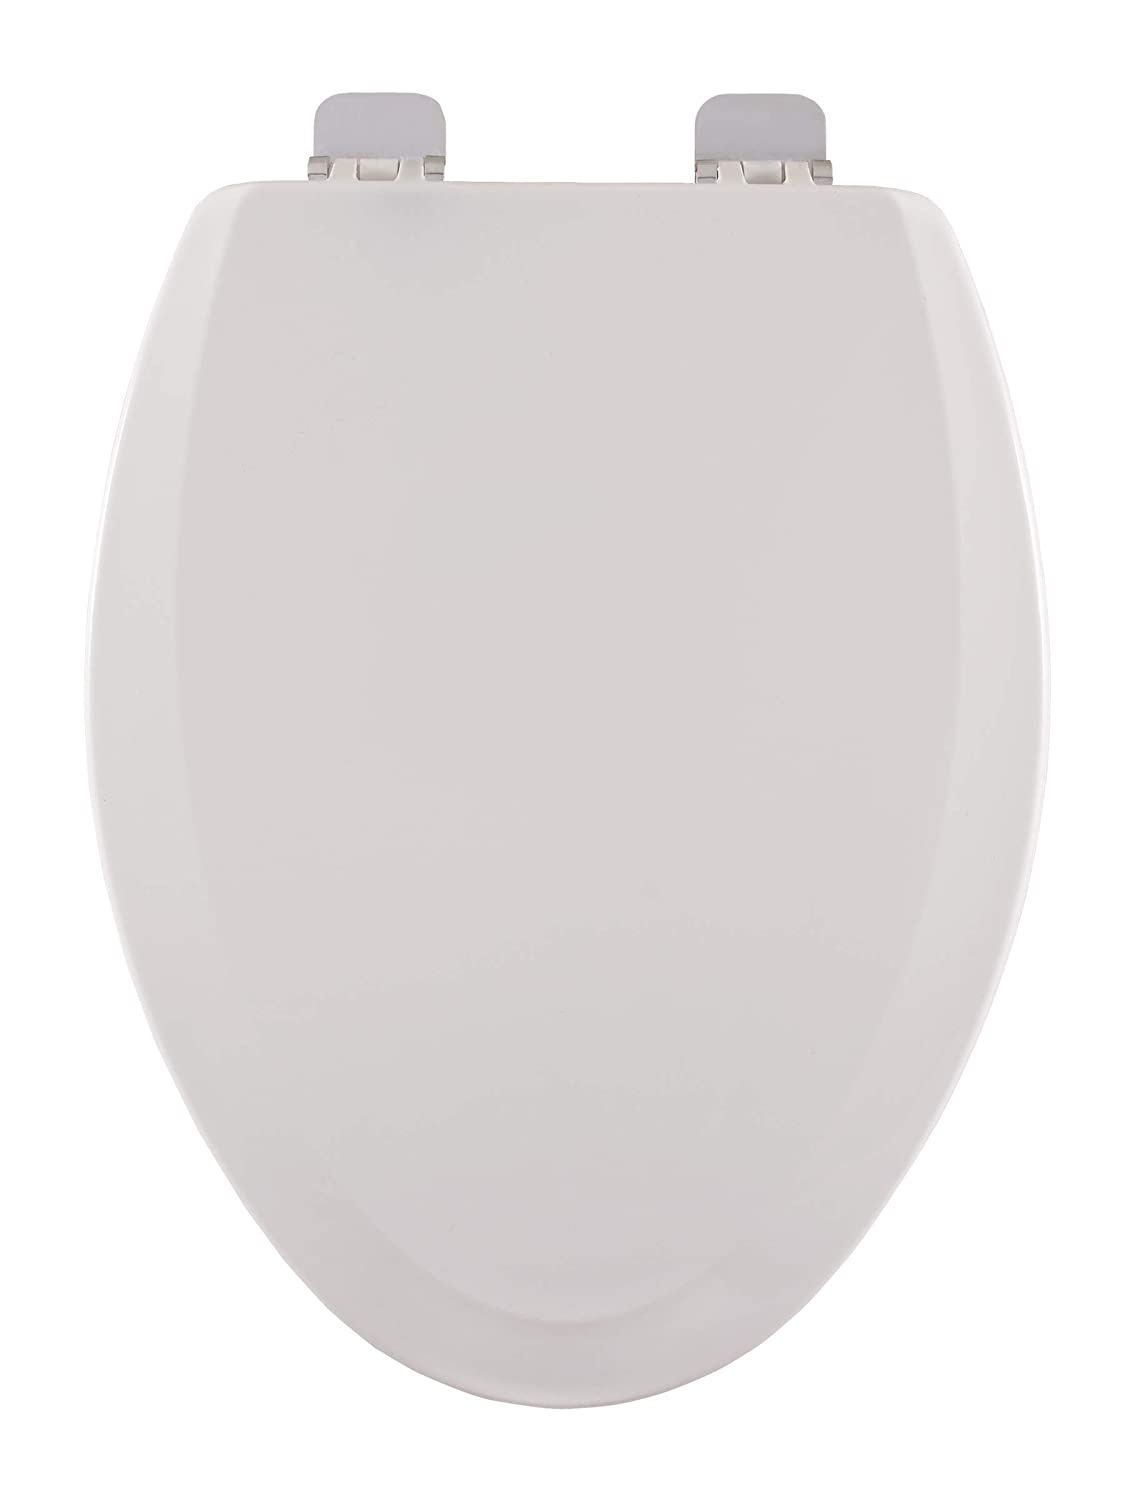 Centoco 900bn 001 Elongated Wooden Toilet Seat Heavy Duty Molded Wood With Centocore Technology White With Brushed Nickel Hinge Clothing